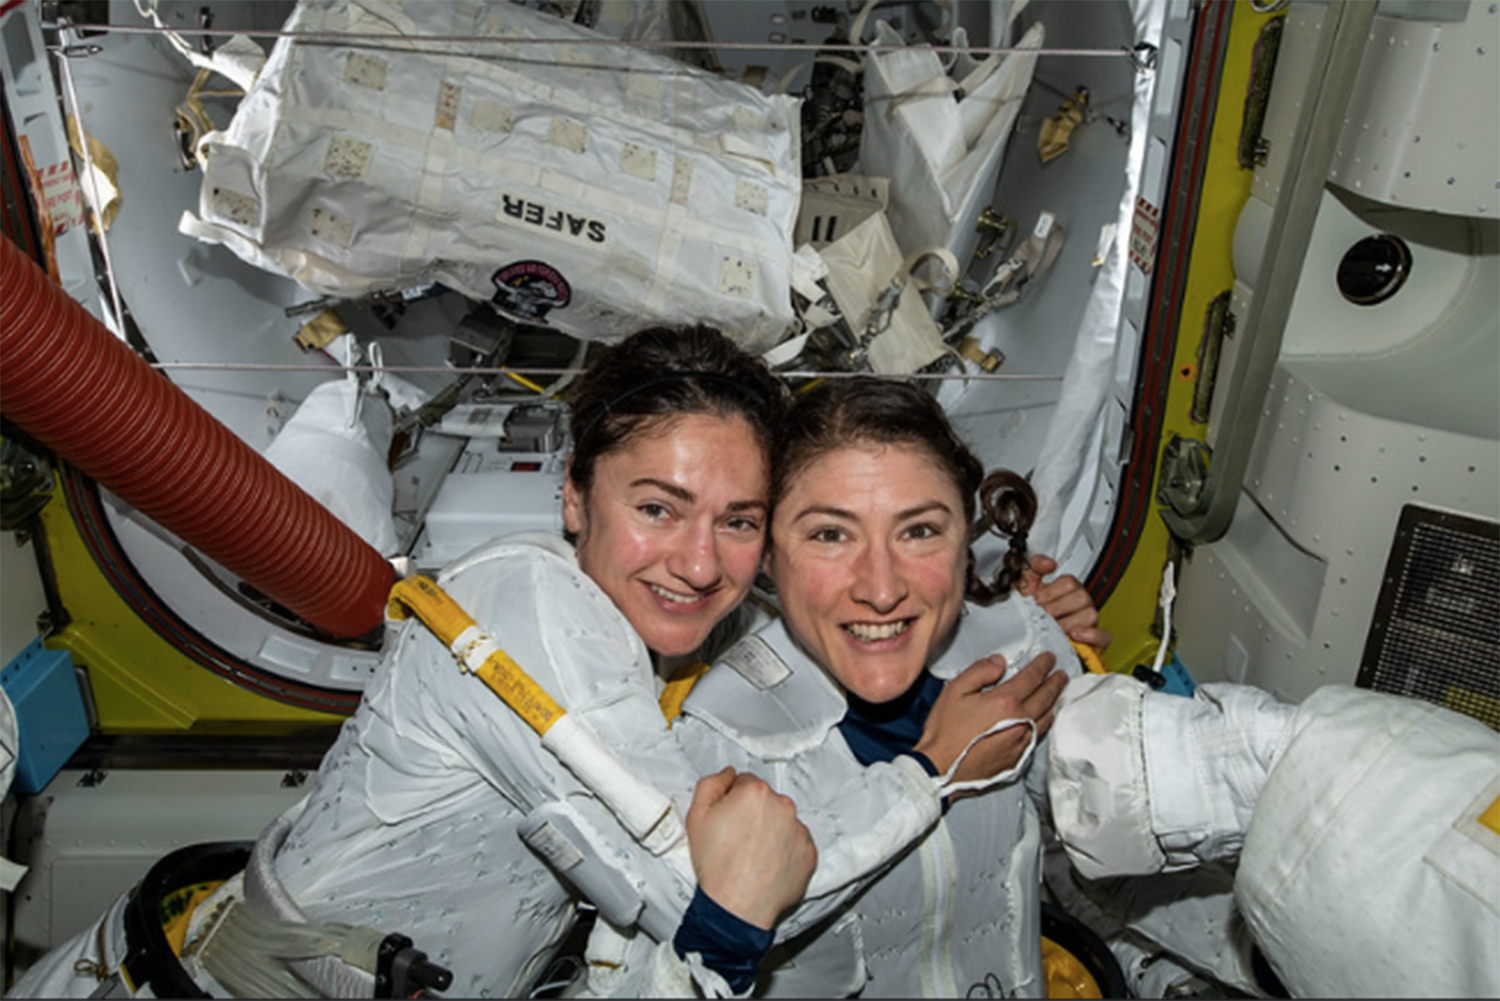 Astronauts Jessica Meir and Christina Koch in the International Space Station. Meir is originally from Maine while Koch is from Michigan.